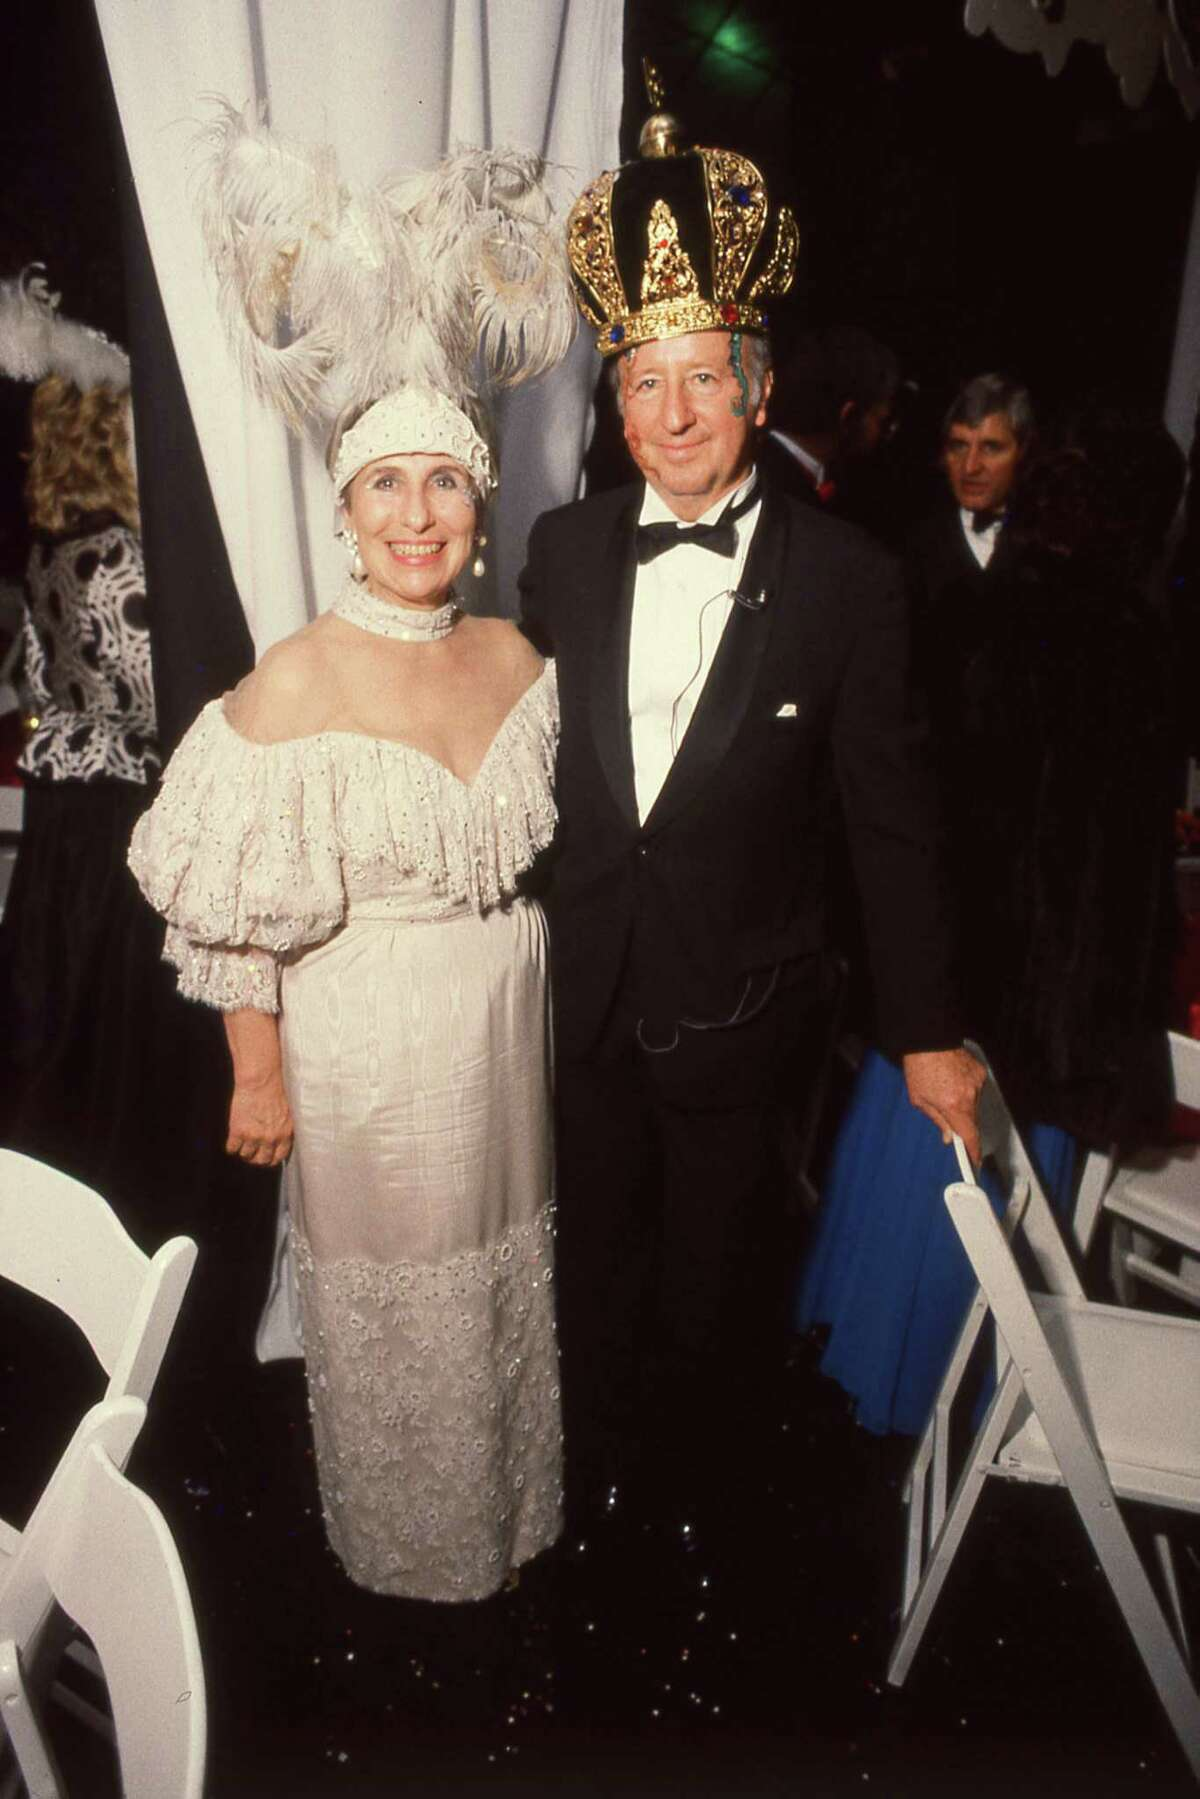 On Feb. 16, 1985 George and Cynthia Mitchell at Mardi Gras festivities at The Tremont House in Galveston. The party was part of the grand opening celebration for the new Tremont Hotel.